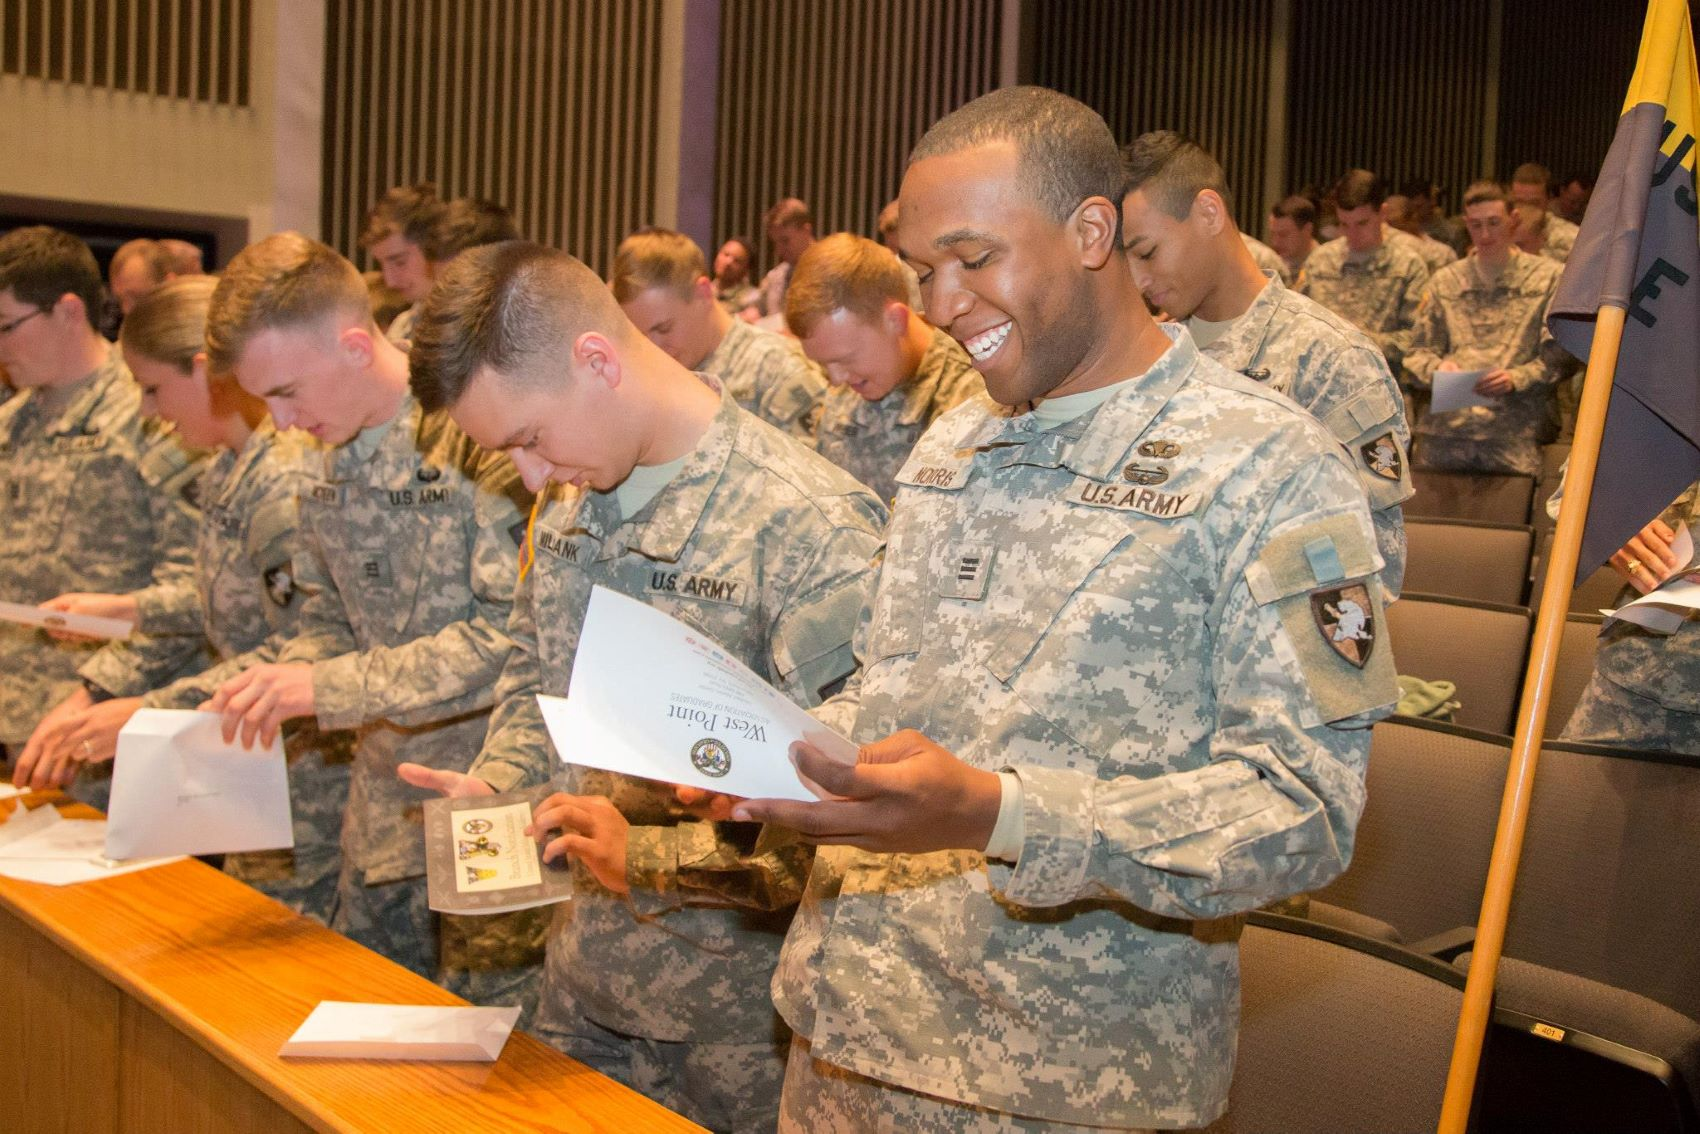 WestPoint students receive award and certificate